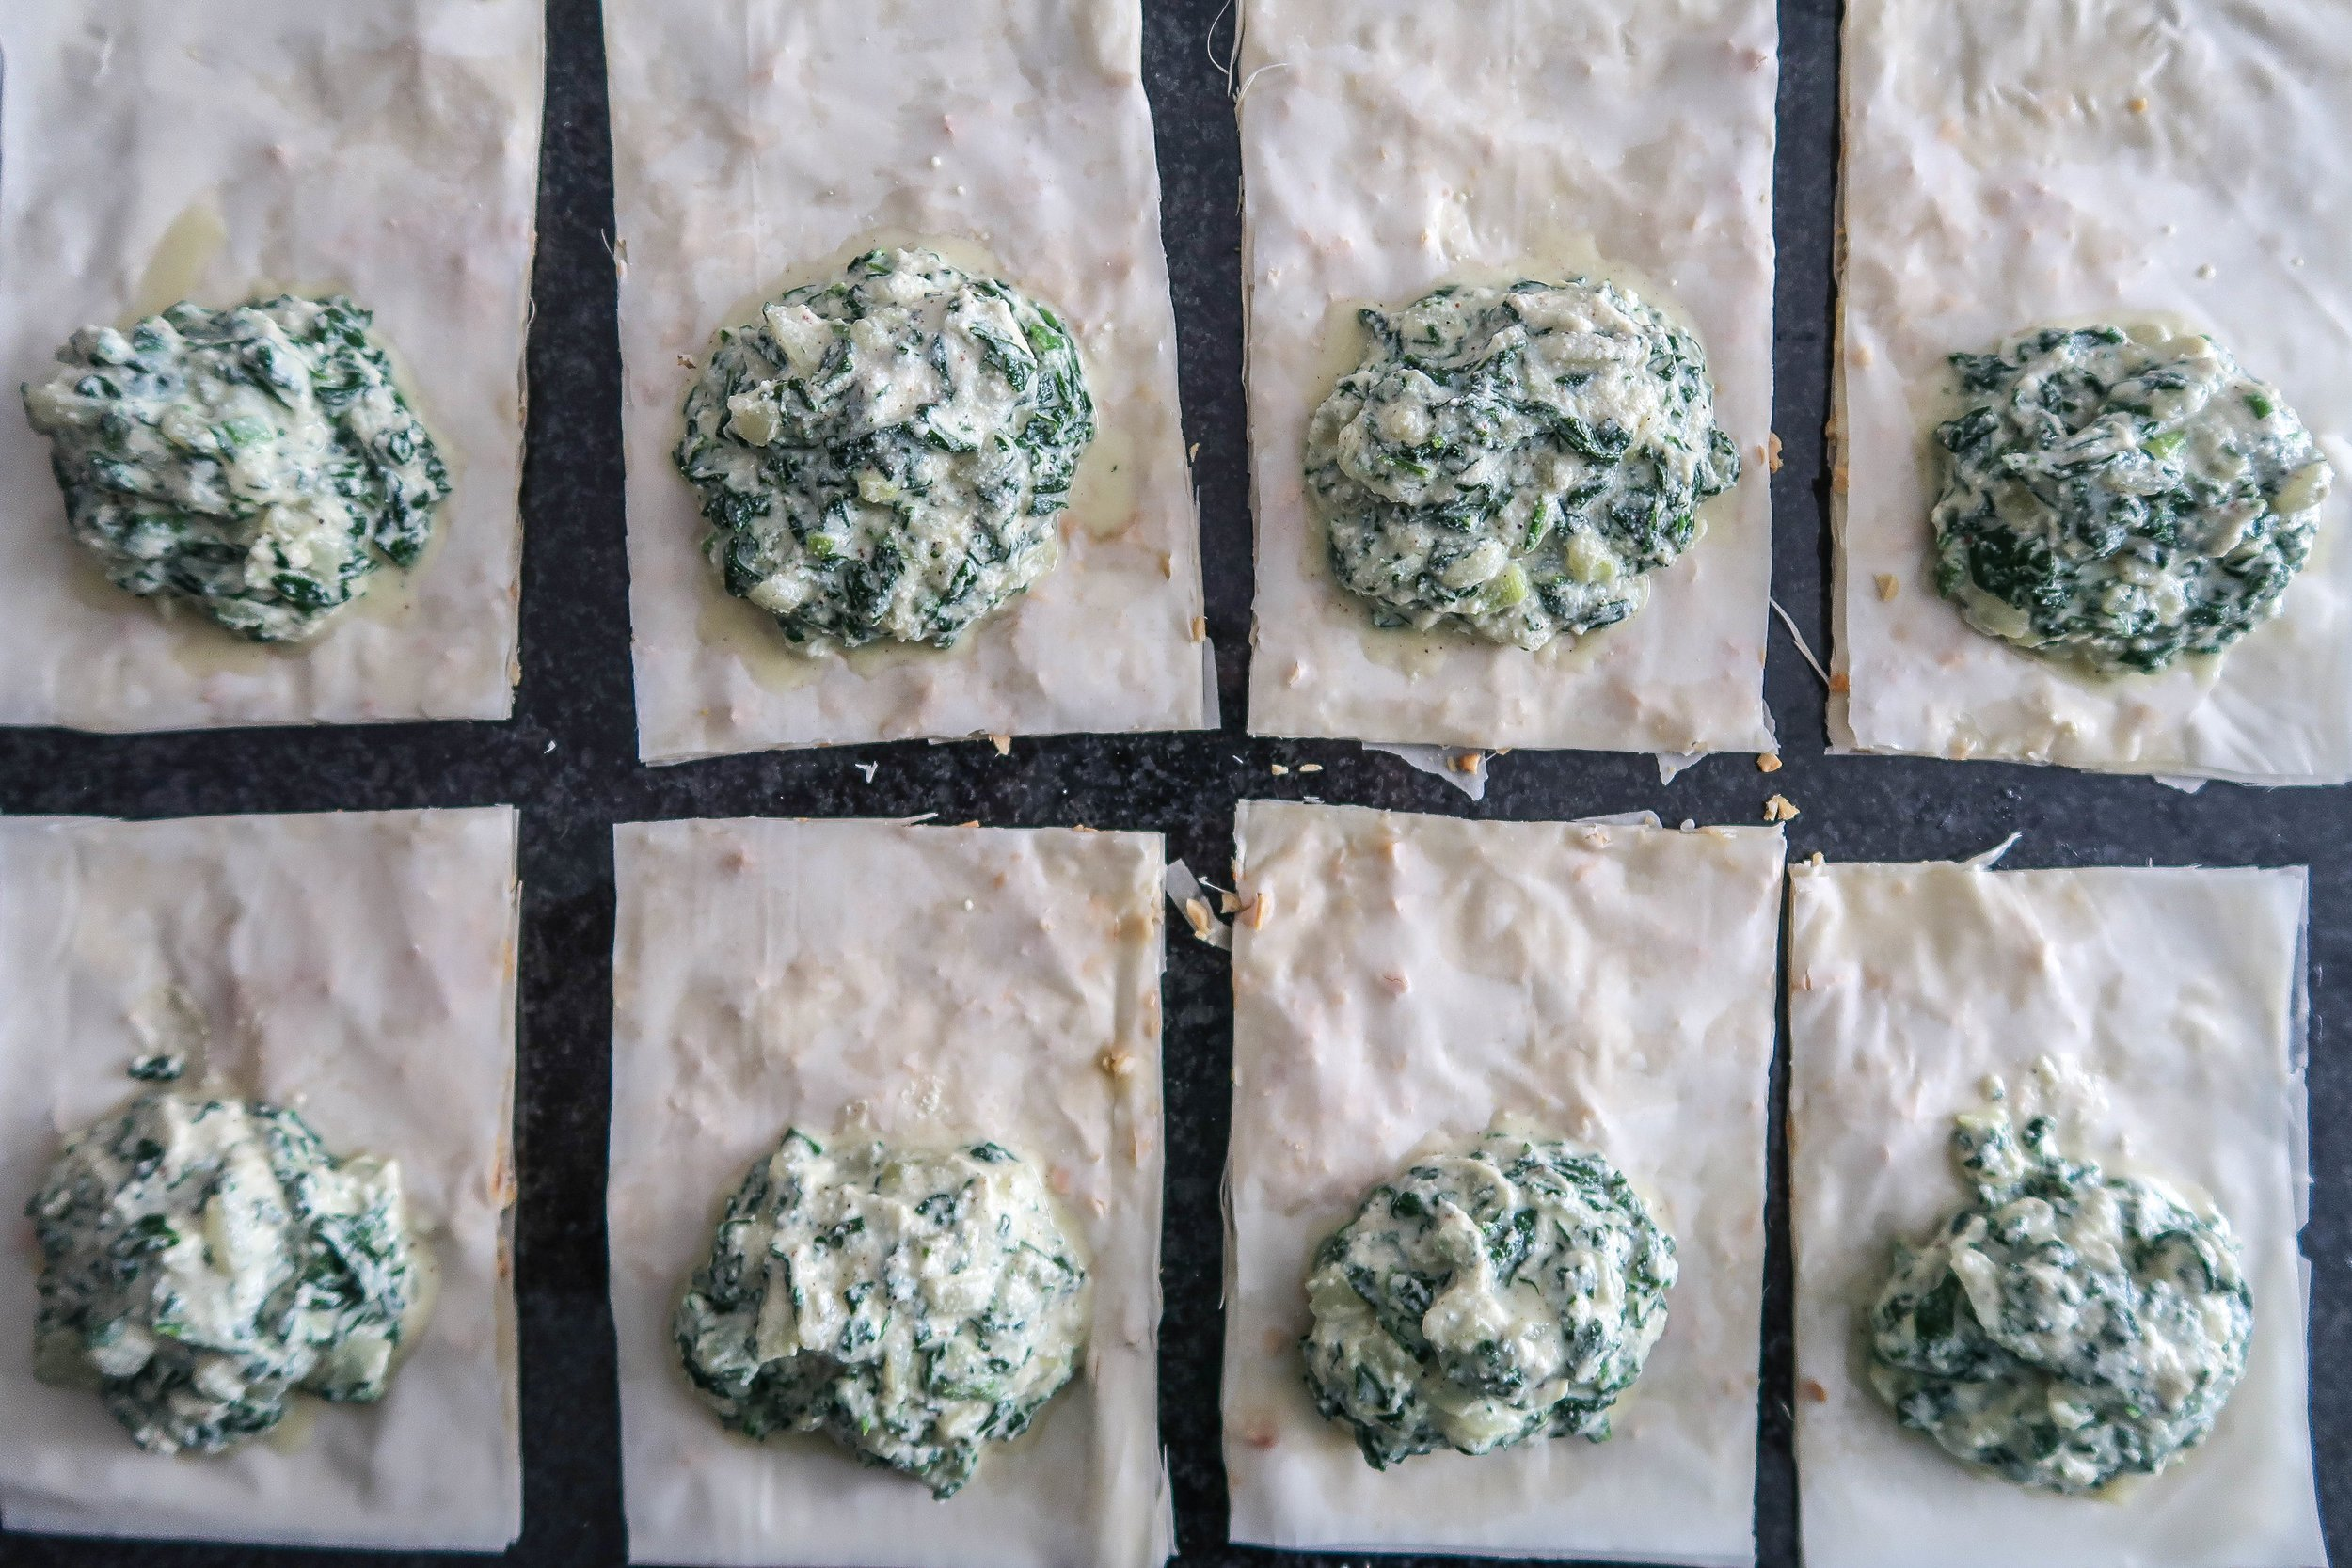 Phyllo dough rectangles with a dollop of spinach and ricotta filling.